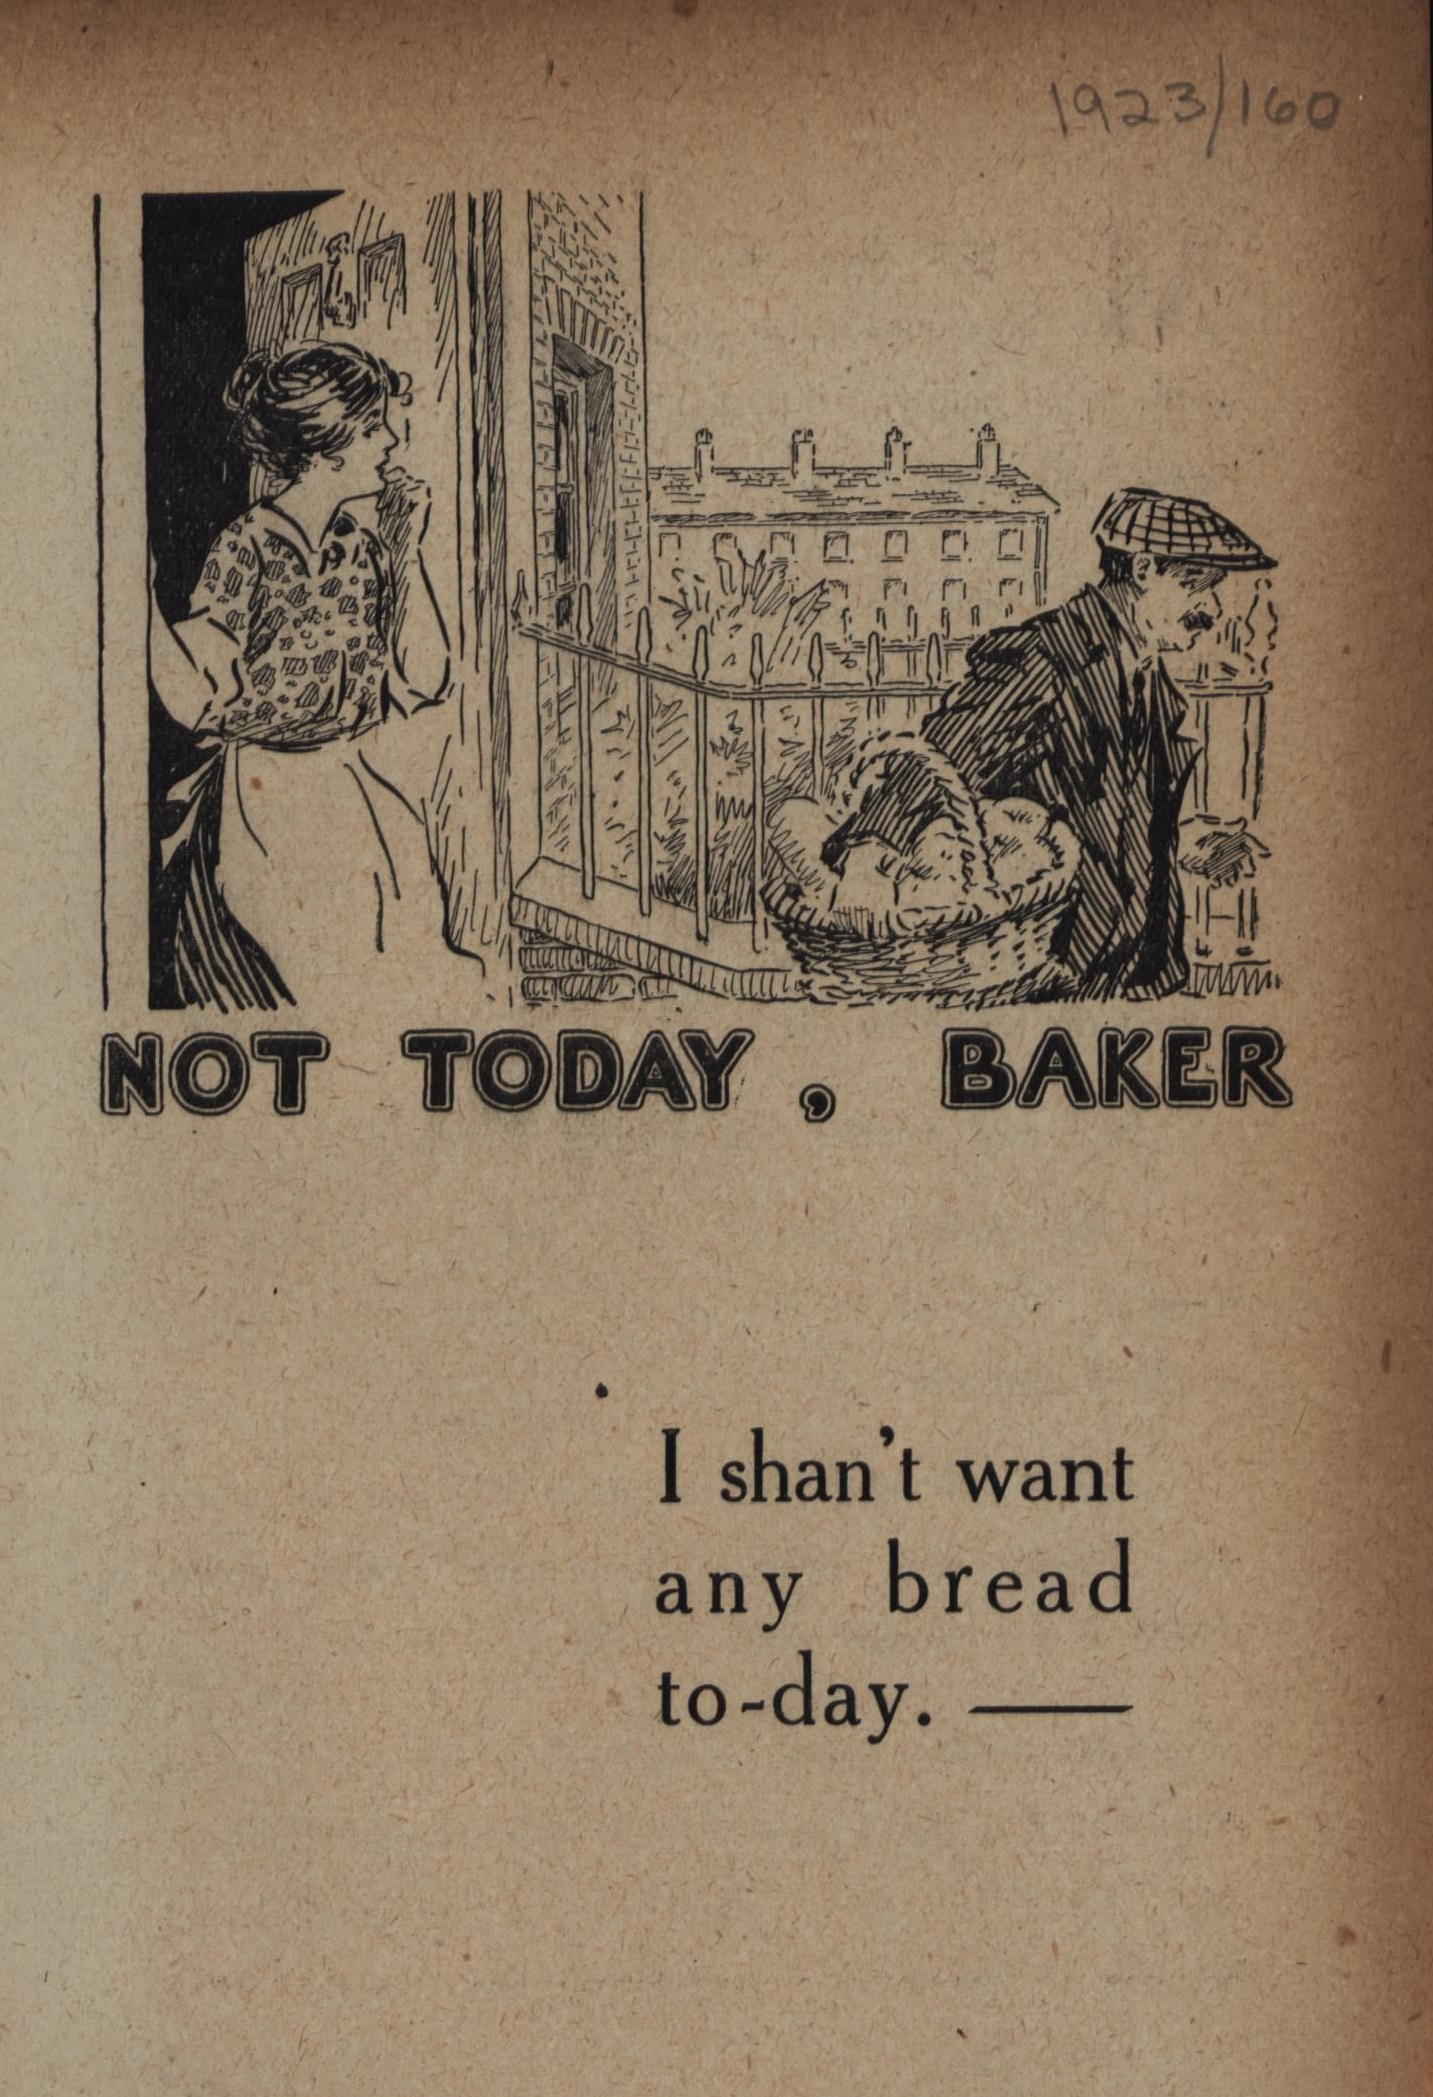 Not today, Baker leaflet